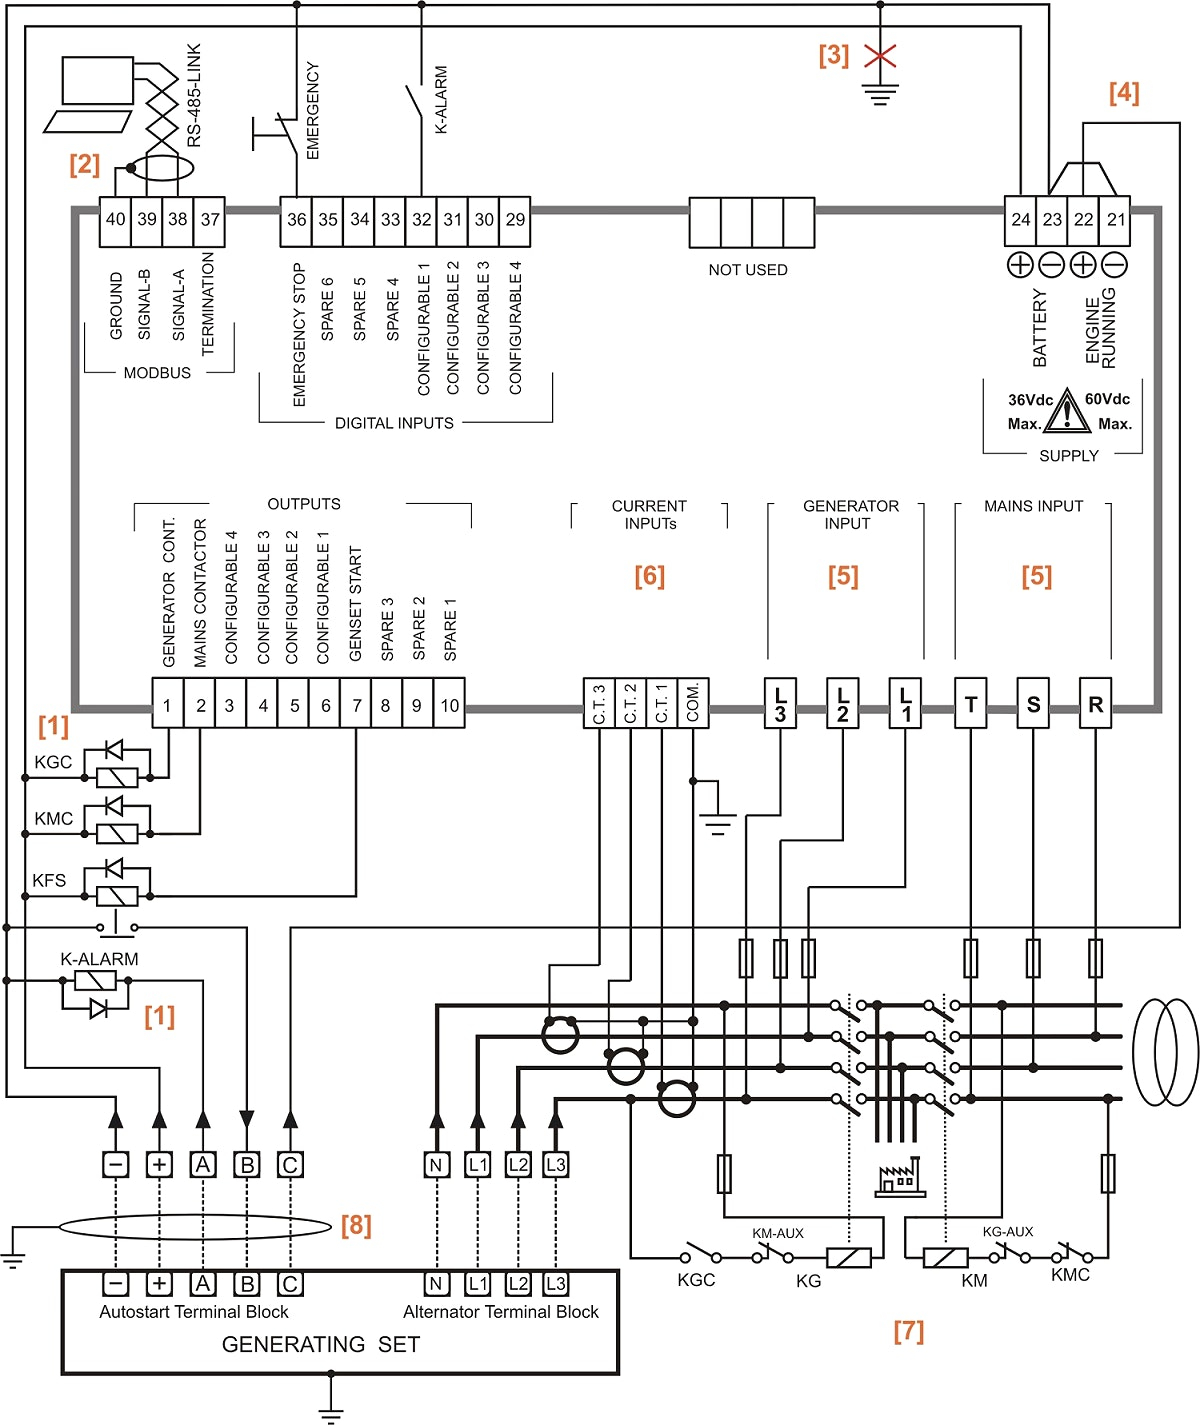 hight resolution of asco ats wiring diagram real wiring diagram u2022 rh mcmxliv co asco automatic transfer switch series